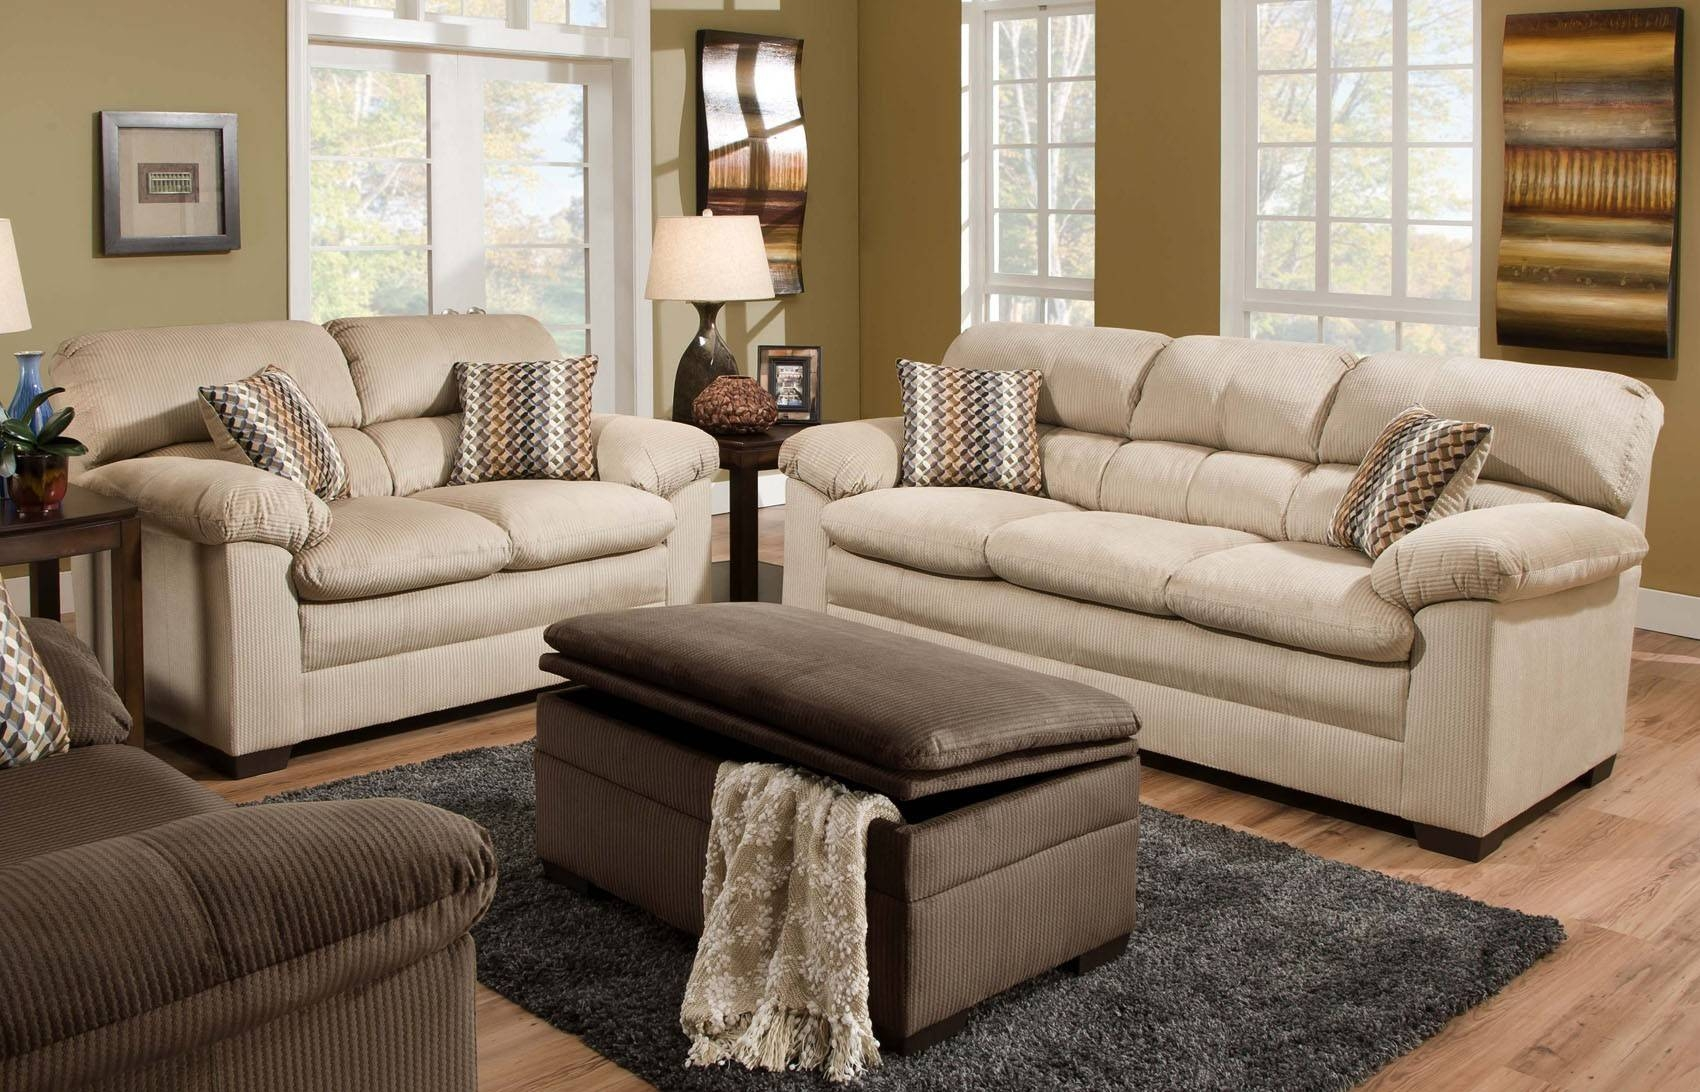 Lakewood Oversized Sofa Loveseat Set Beige Orange County Ca With Sofas Orange County (View 4 of 30)